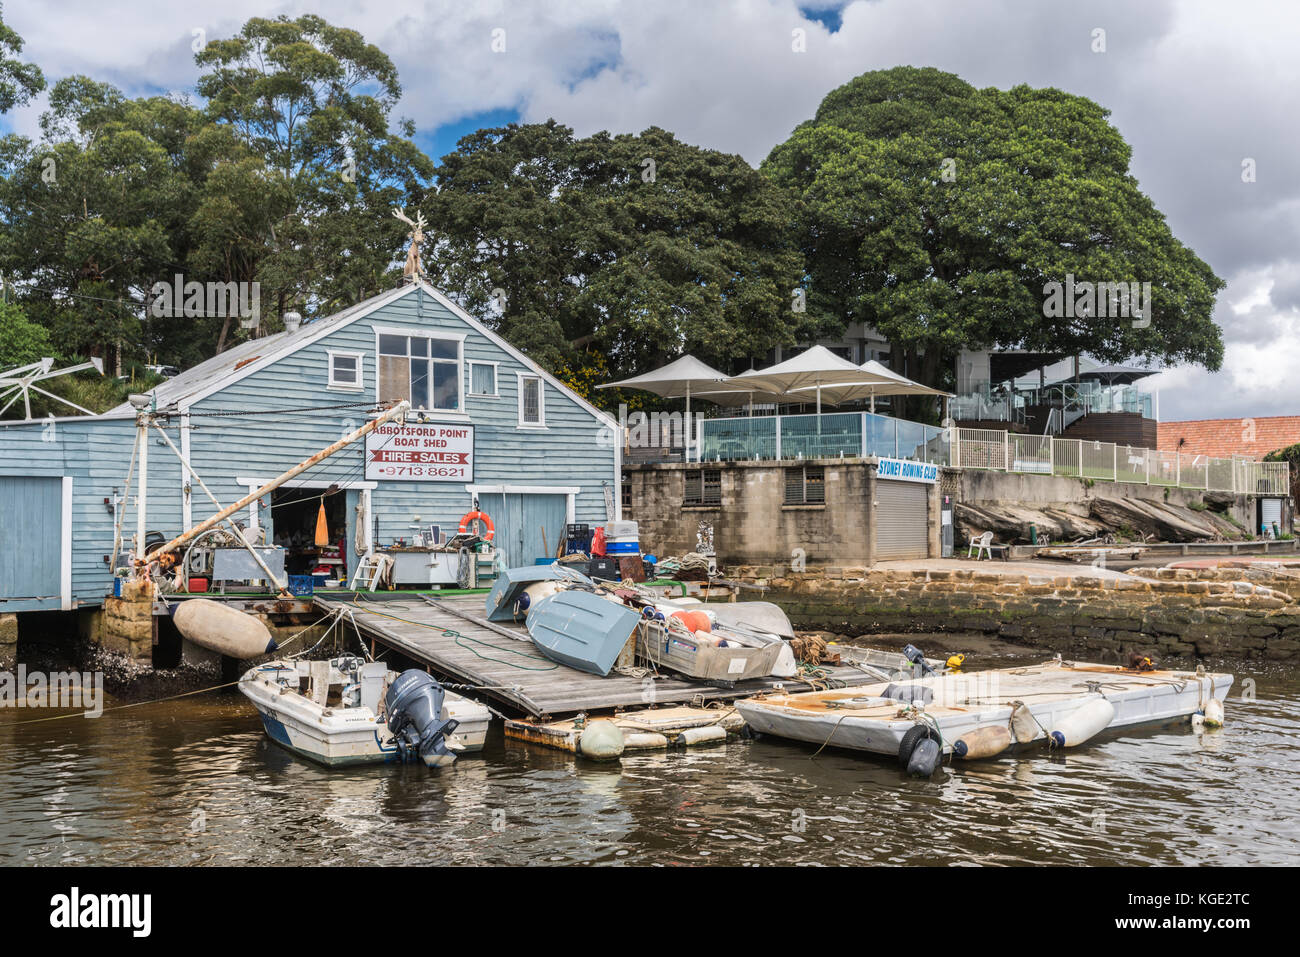 Cheap Accommodation In Parramatta Crappy Stock Photos And Crappy Stock Images Alamy